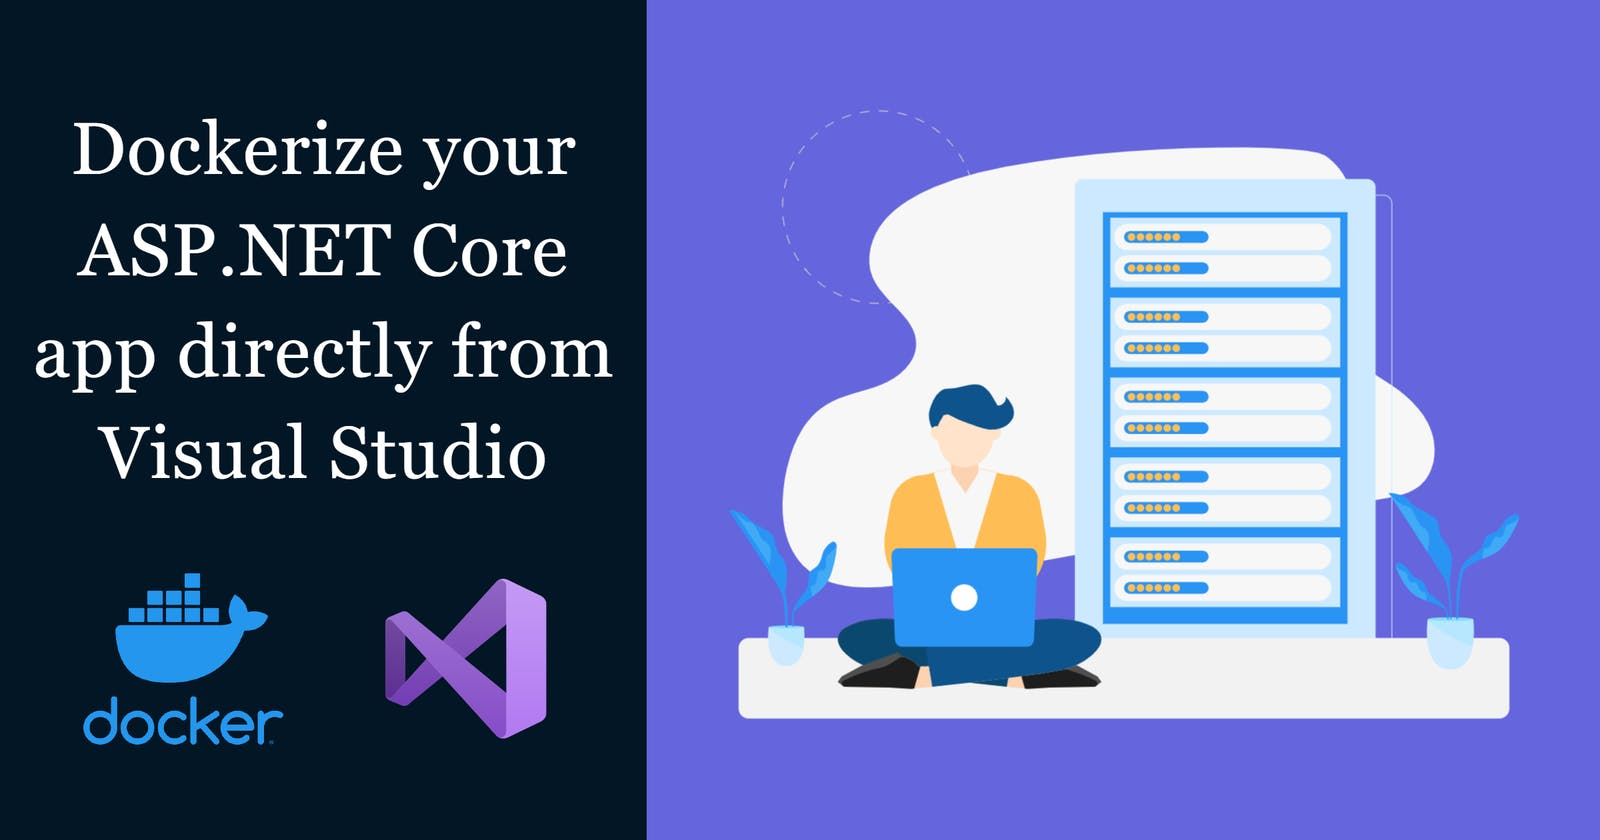 How to Dockerize your ASP.NET Core app directly from Visual Studio